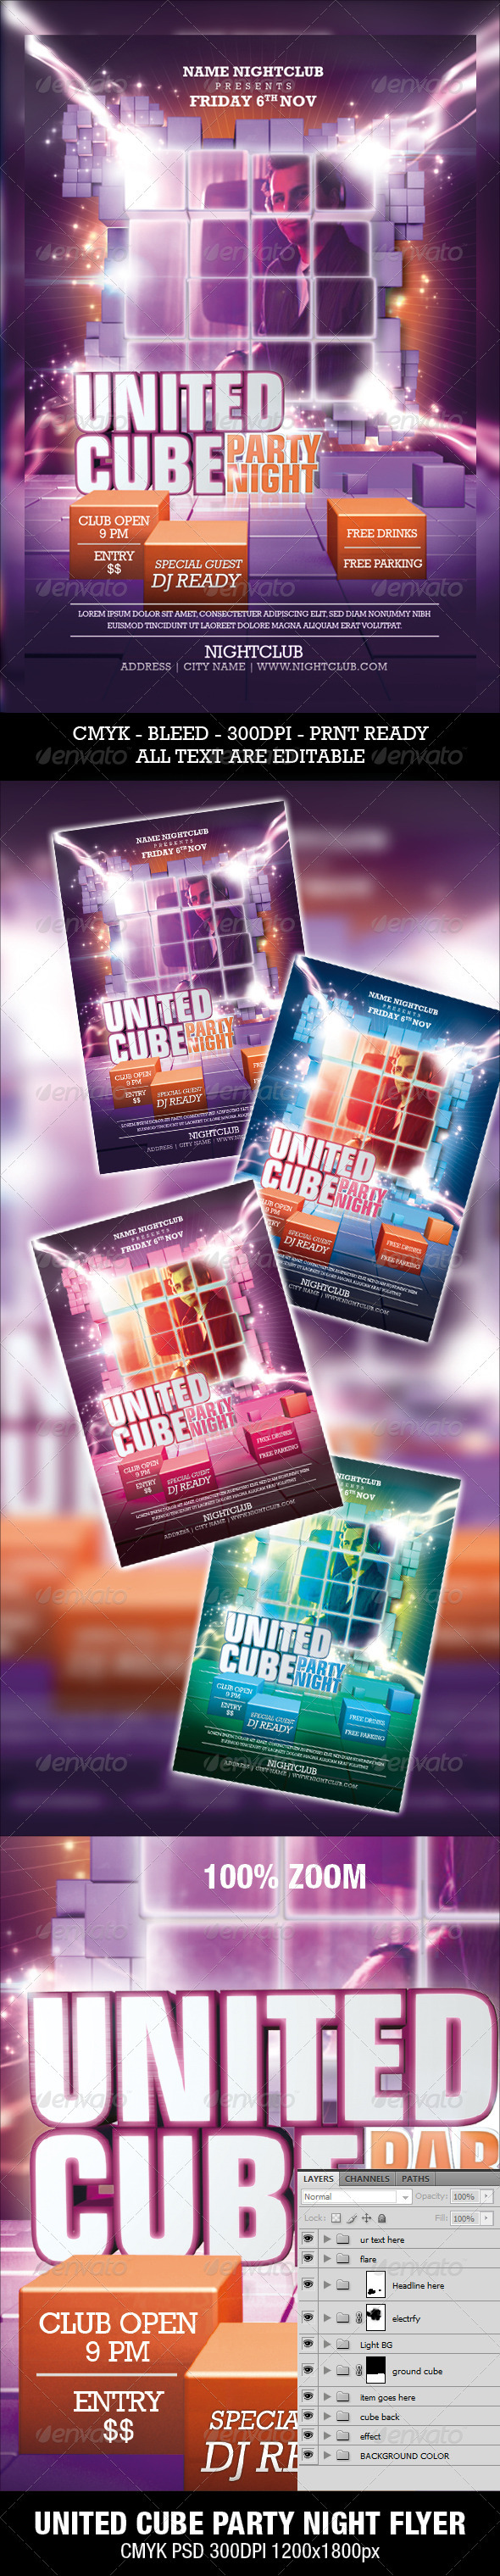 United Cube Party Night Flyer - Clubs & Parties Events